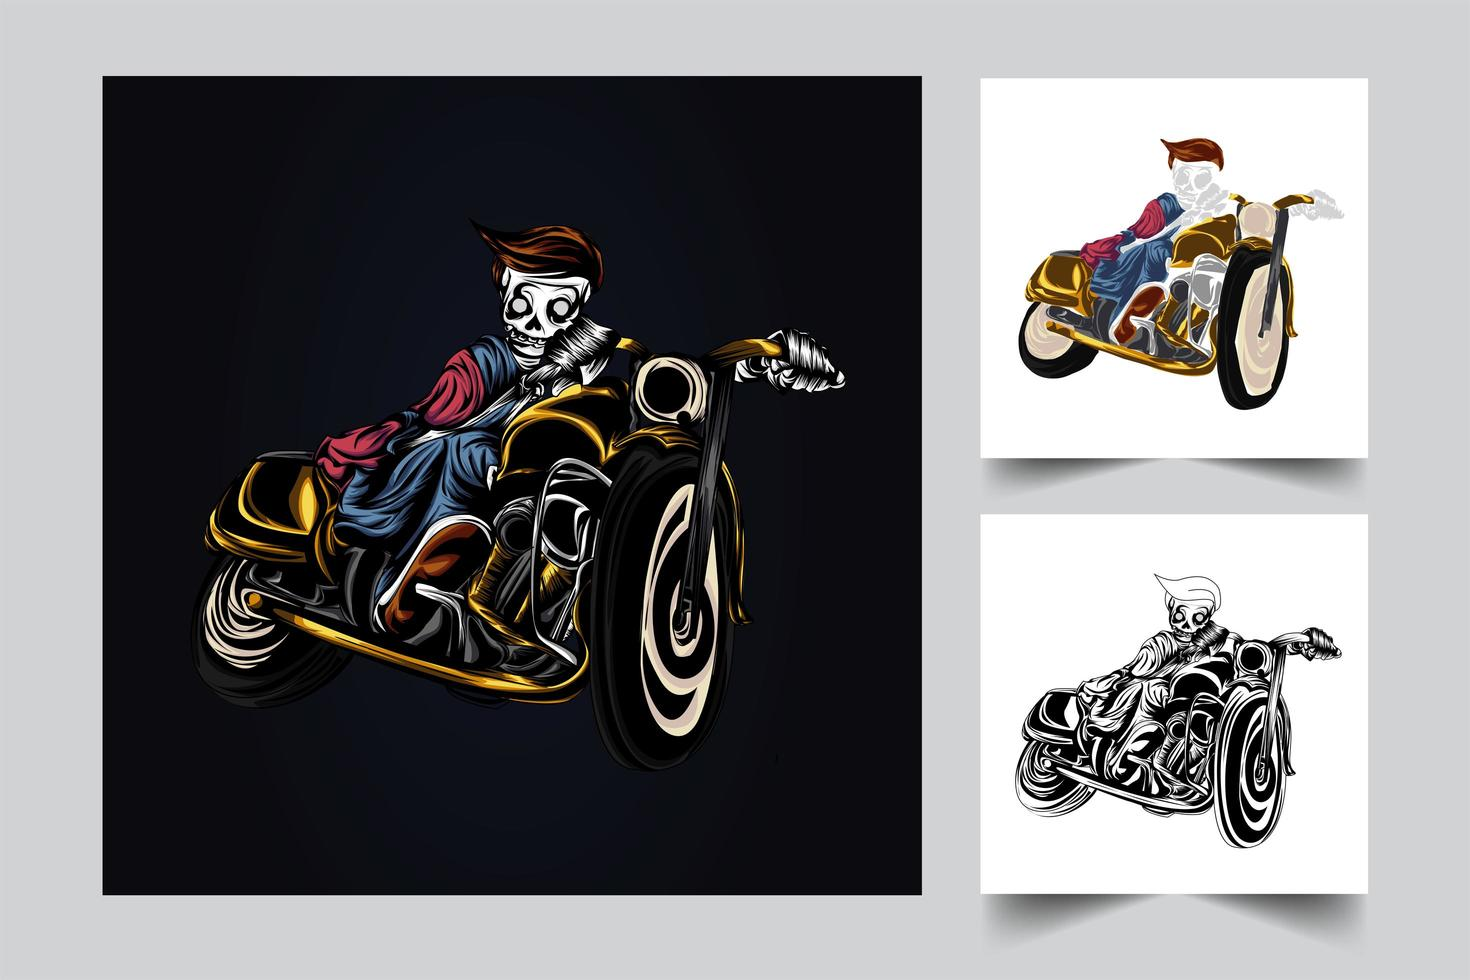 zombie rider artwork illustration vector